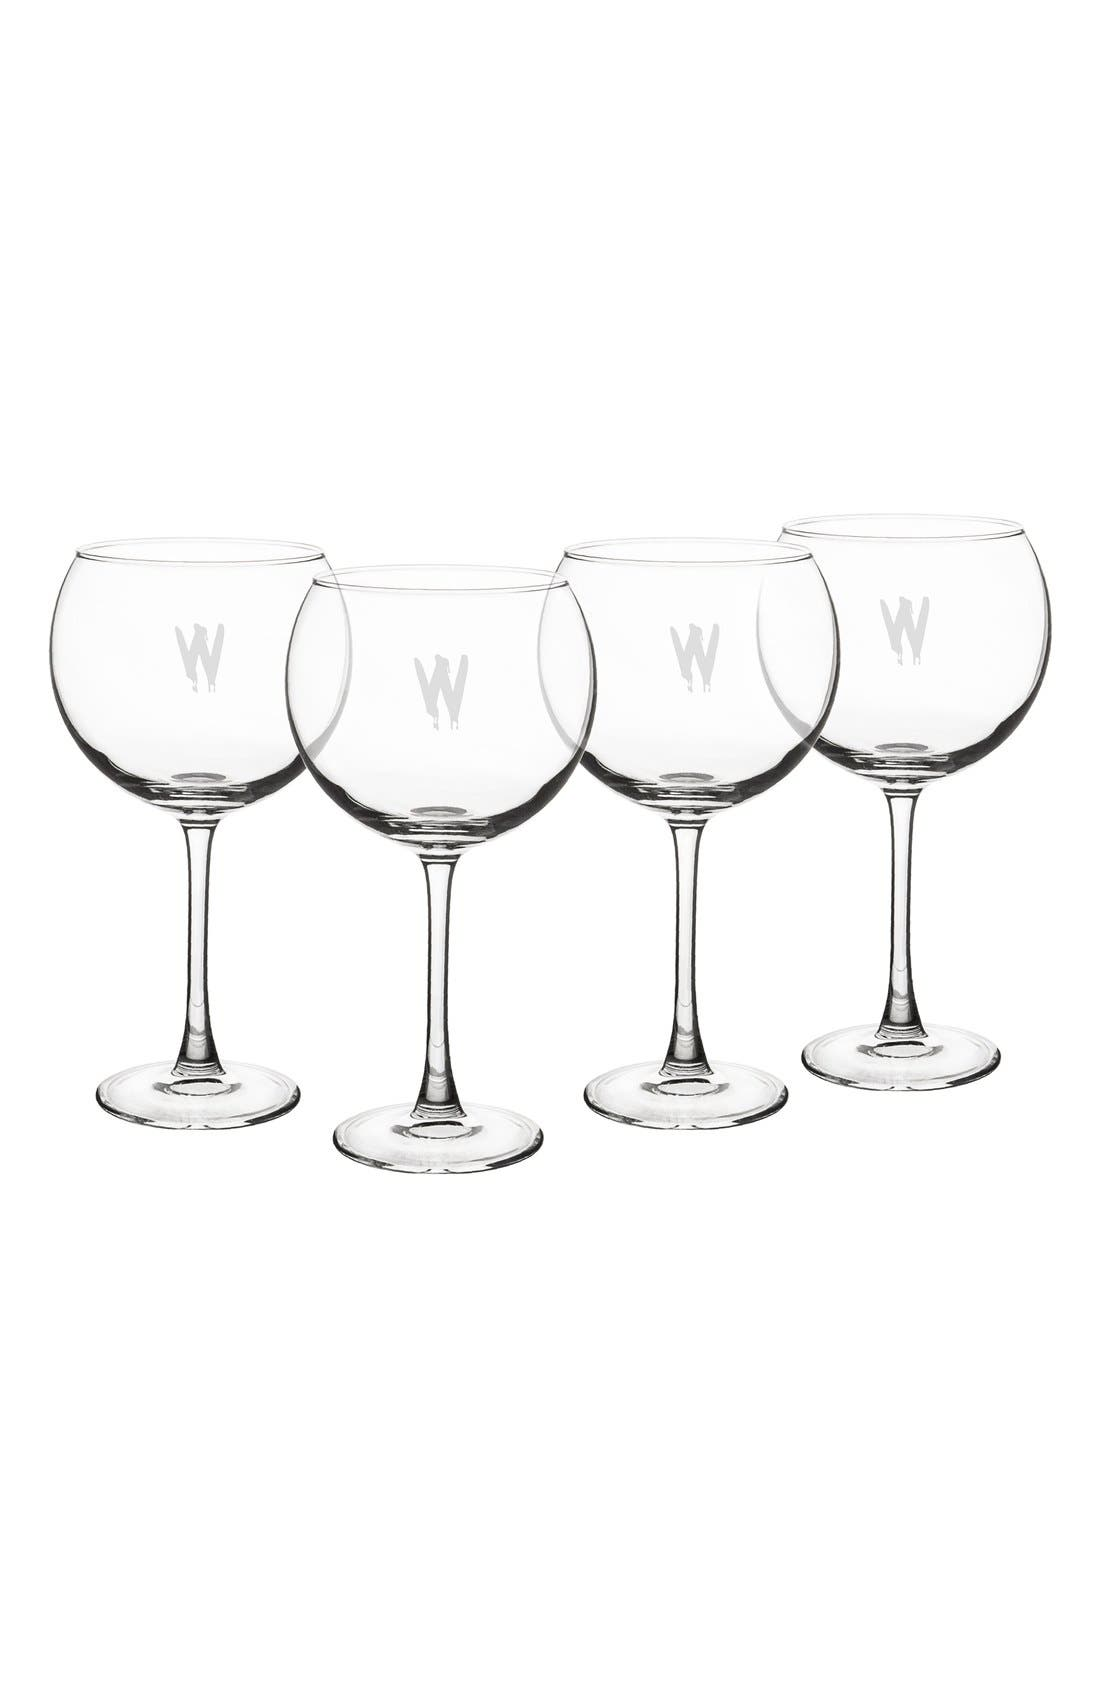 Main Image - Cathy's Concepts Spooky Monogram Set of 4 Red Wine Glasses